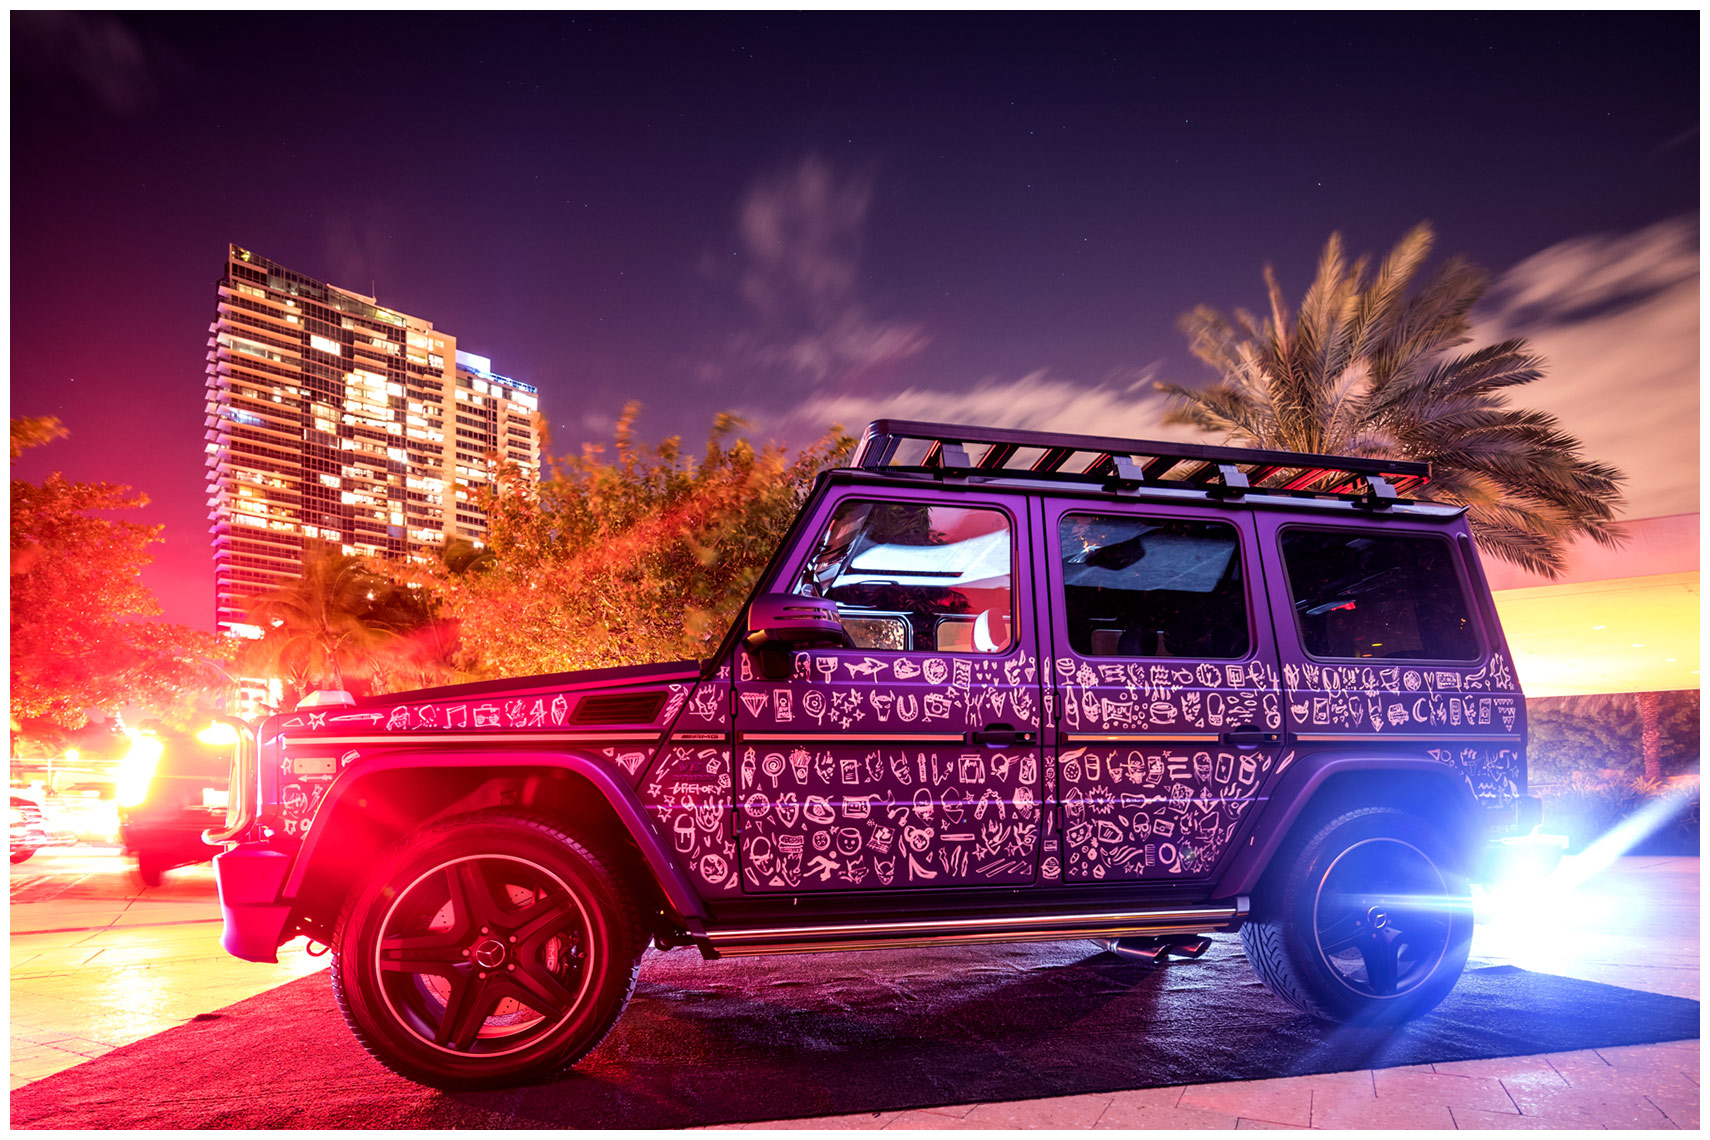 art-basel-gregory-siff-mercedes-benz-g-wagon